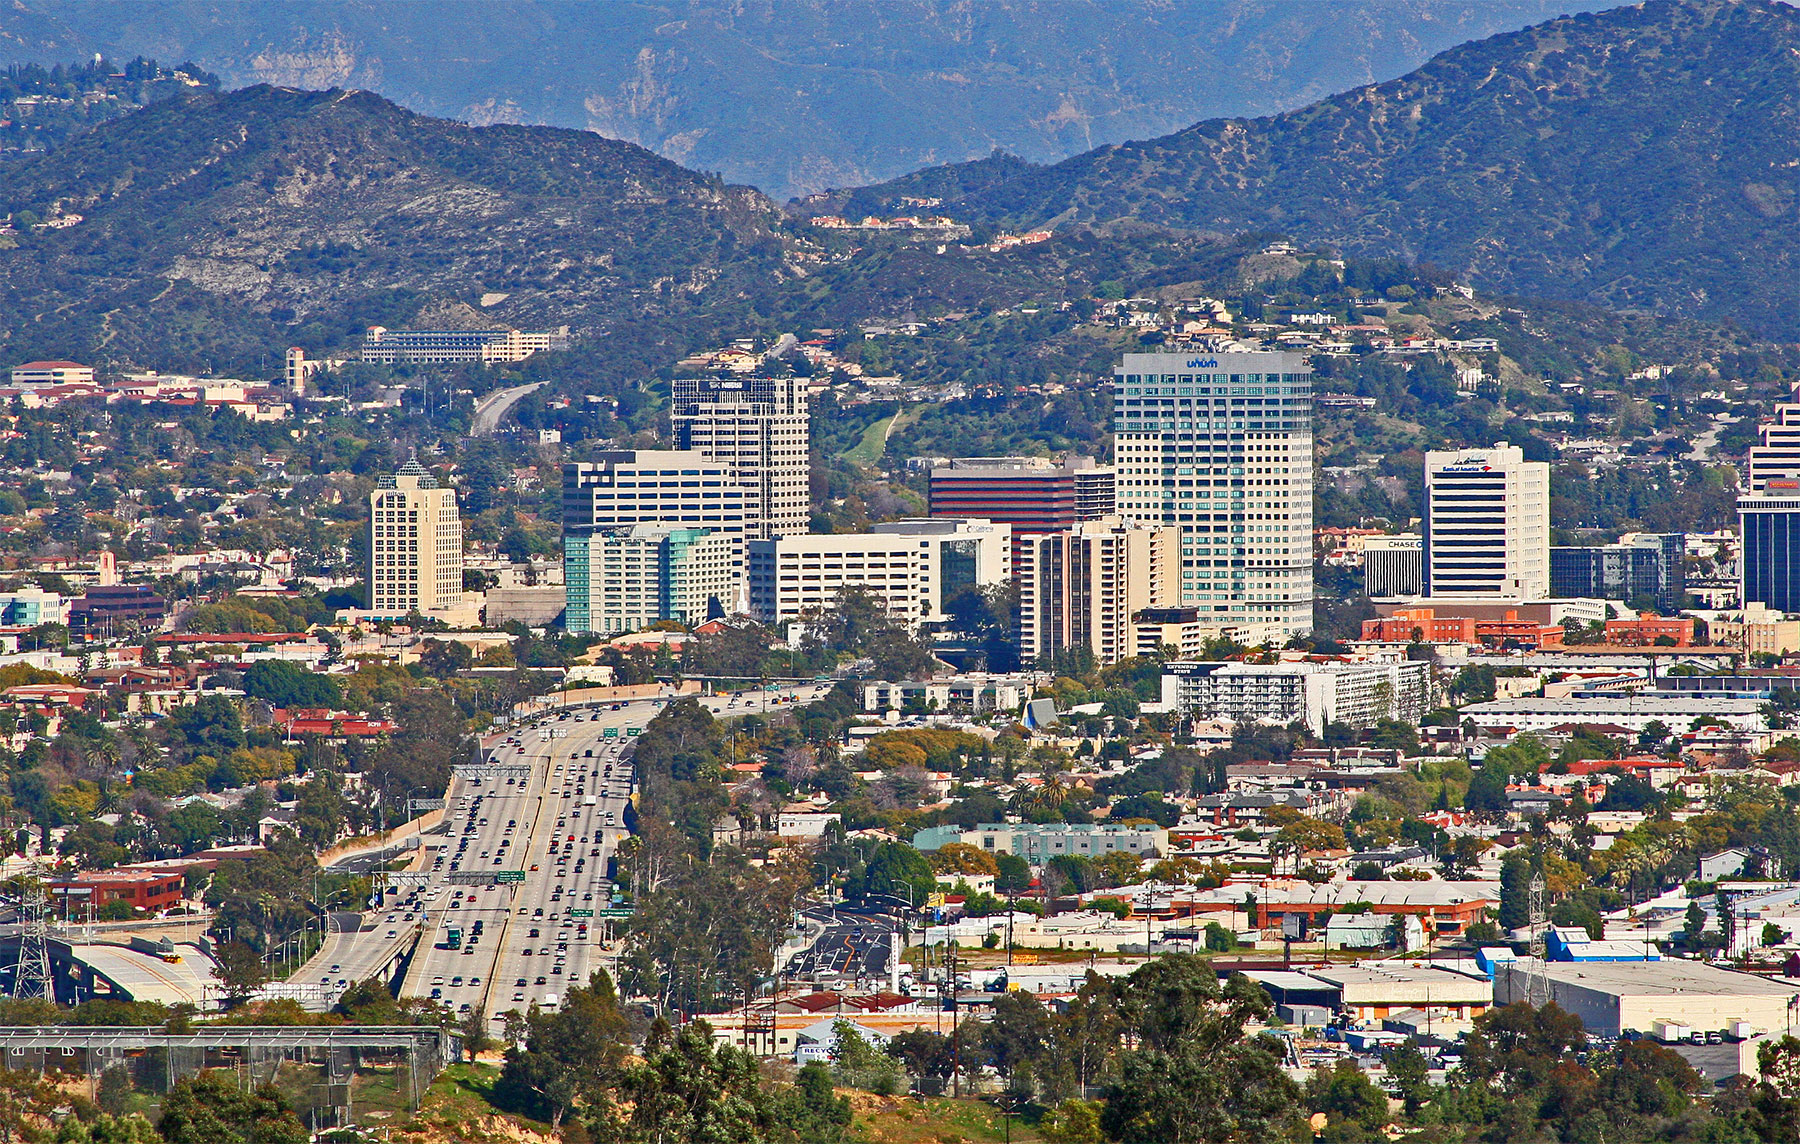 Downtown Glendale Freeway